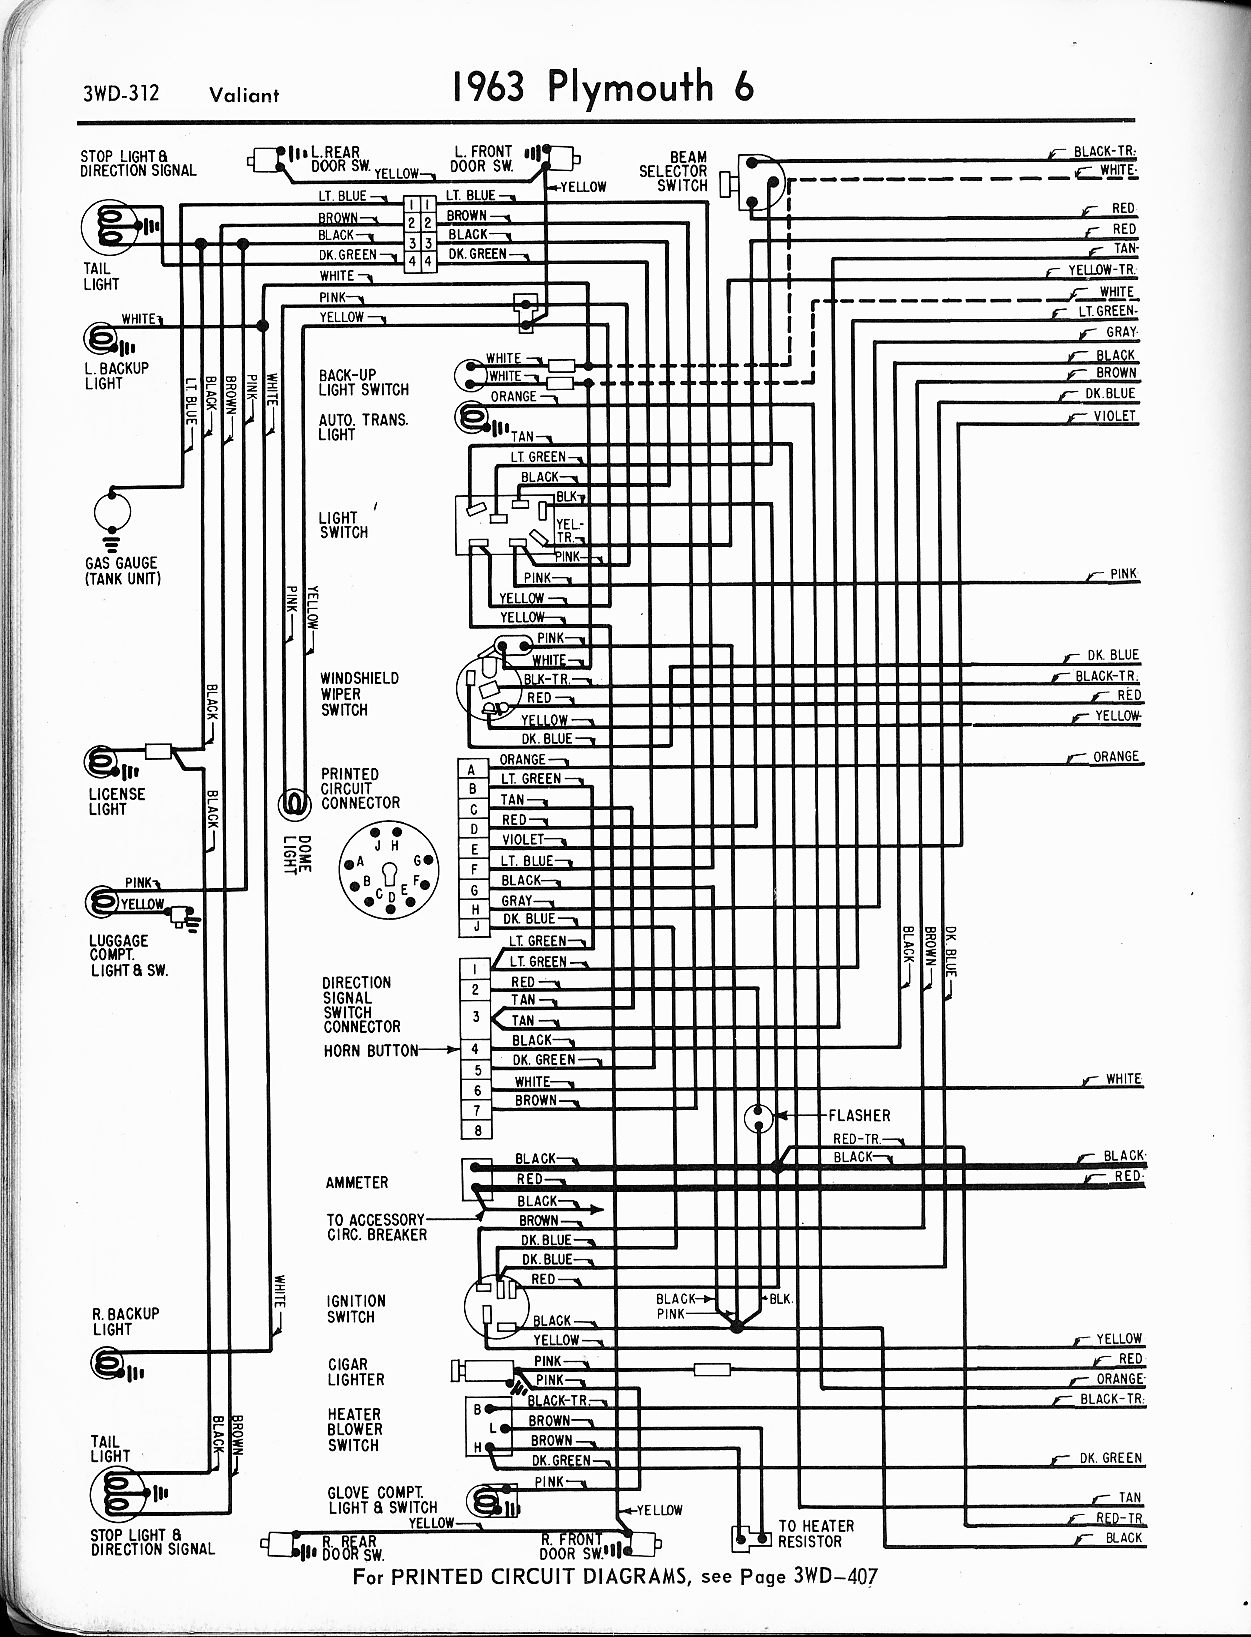 2001 plymouth prowler wiring diagram 1966 plymouth valiant wiring diagram 1966 wiring diagrams 1956 1965 plymouth wiring the old car manual